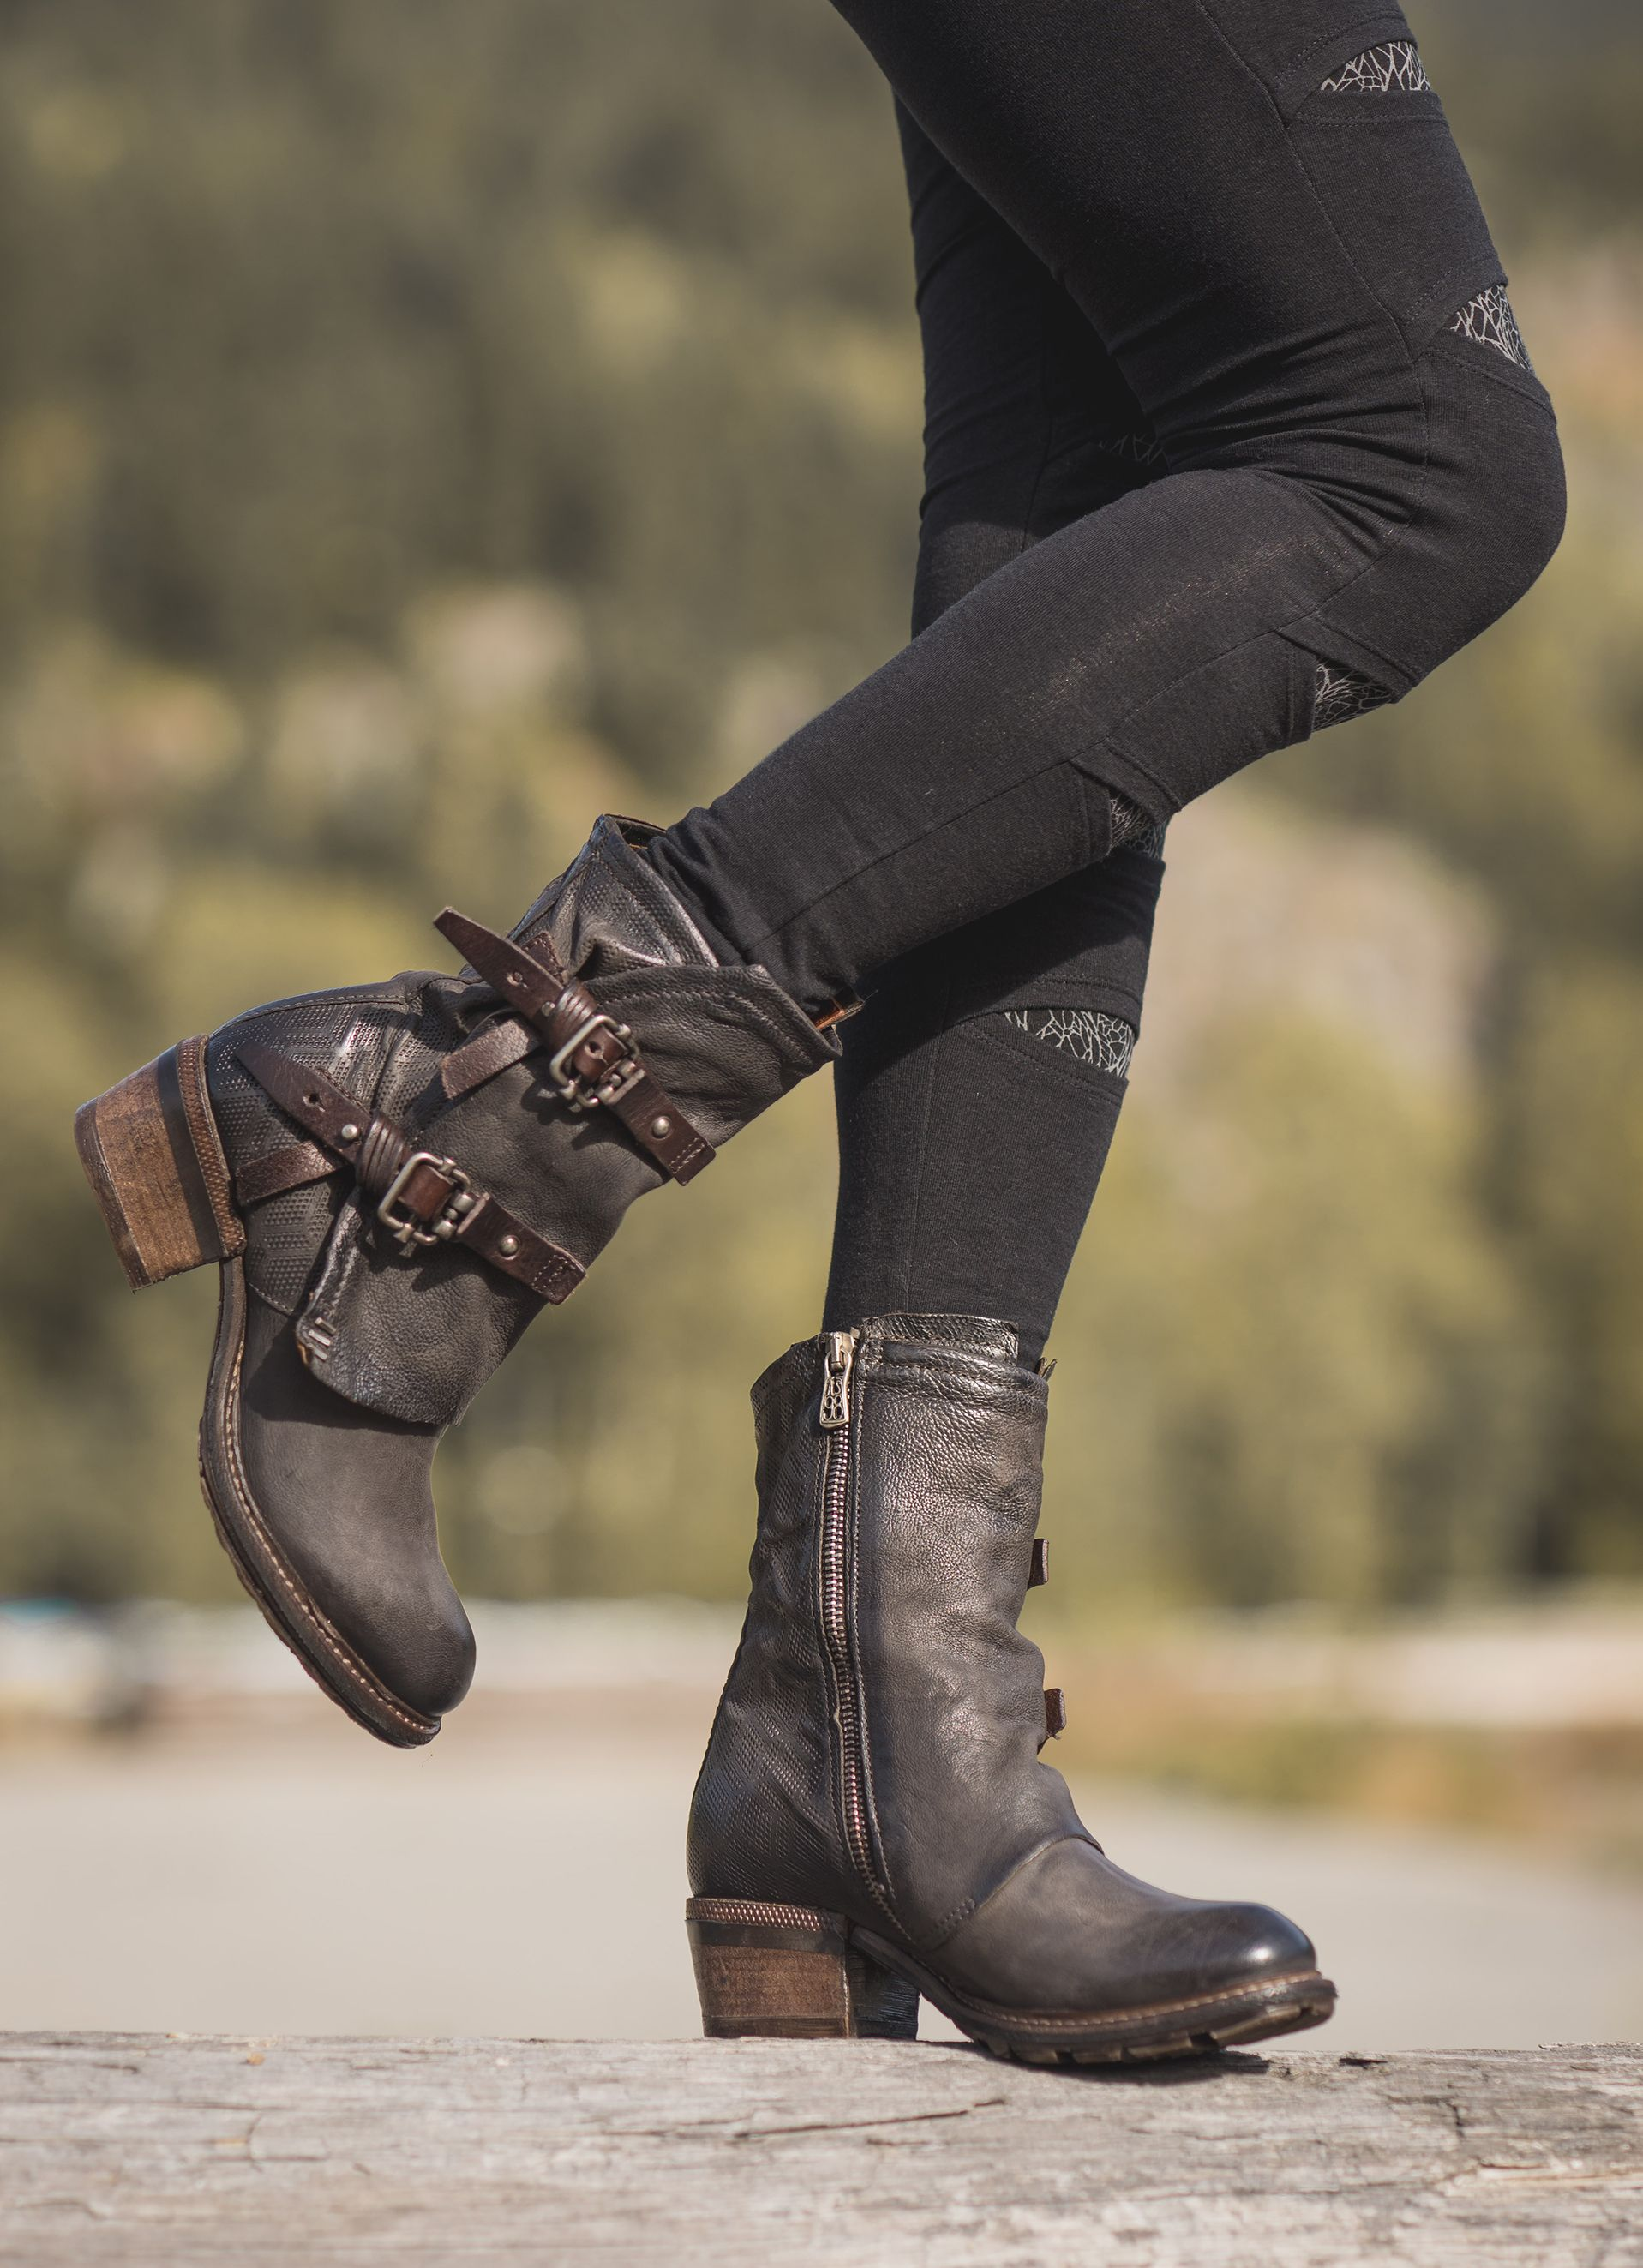 Pro Idee Schuhe Outlaw Boots Black V Roce 2019 Boty Pinterest Boots Shoes A